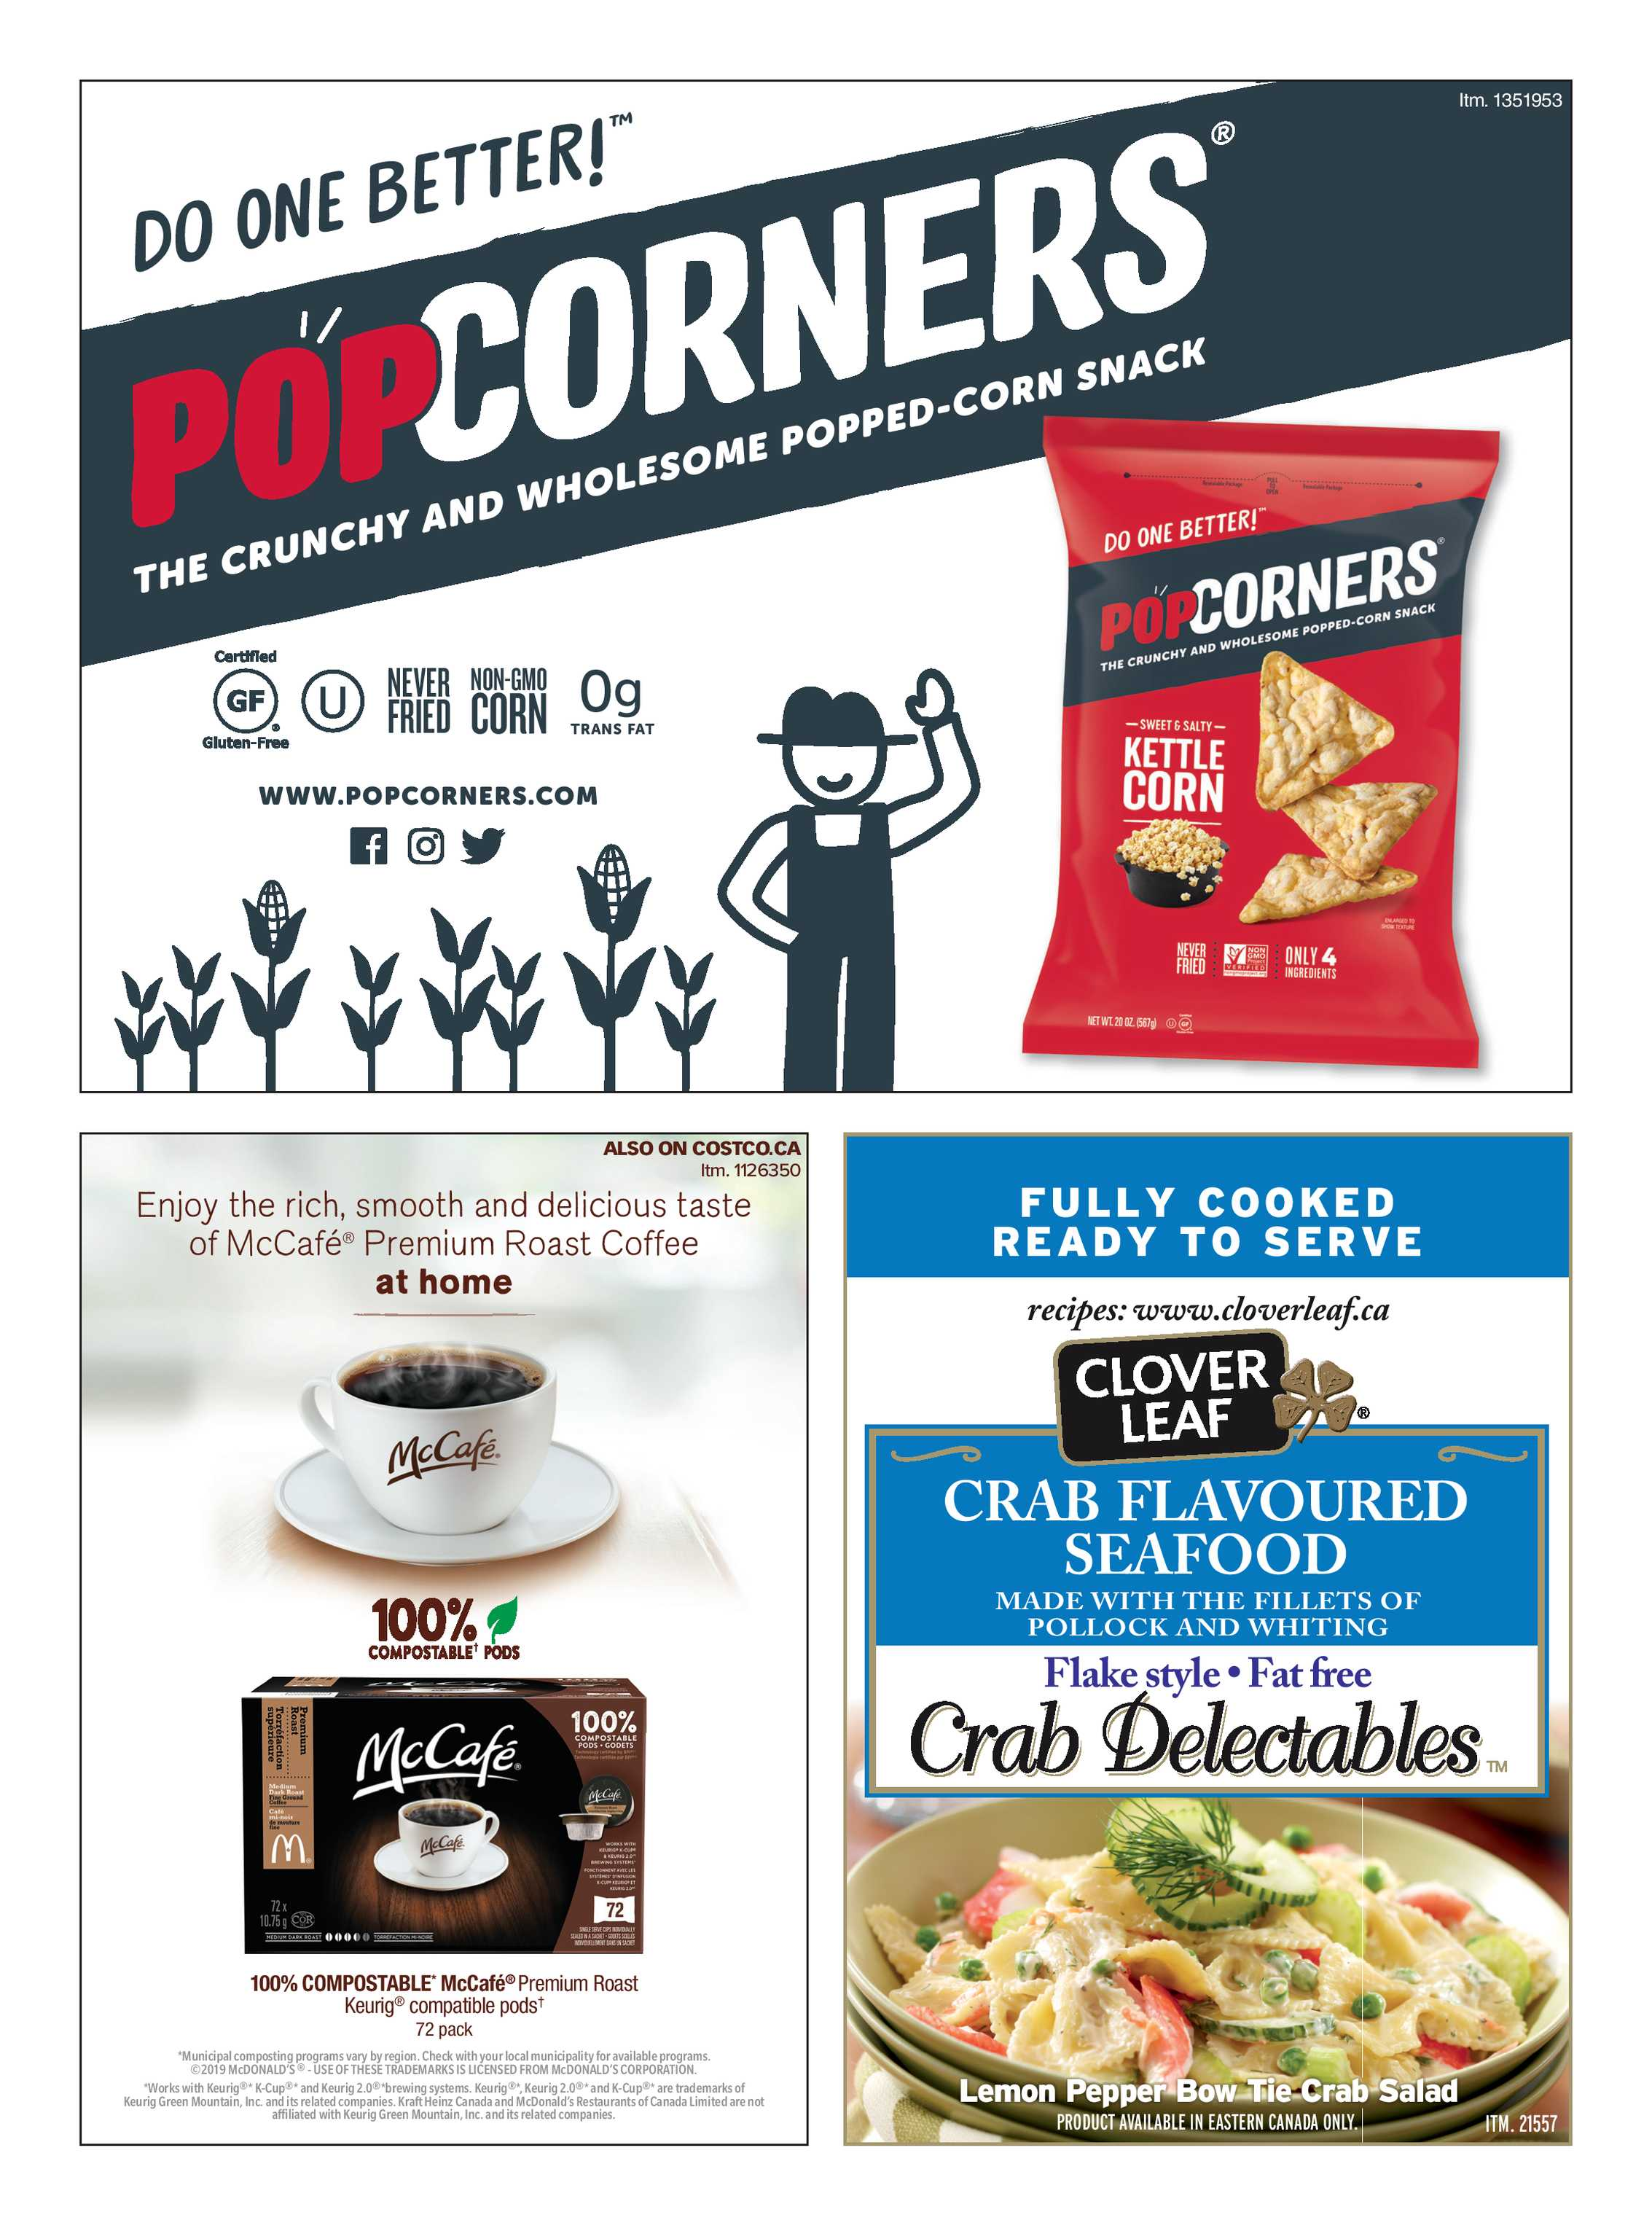 Costco Connection - March/April 2019 - page 38